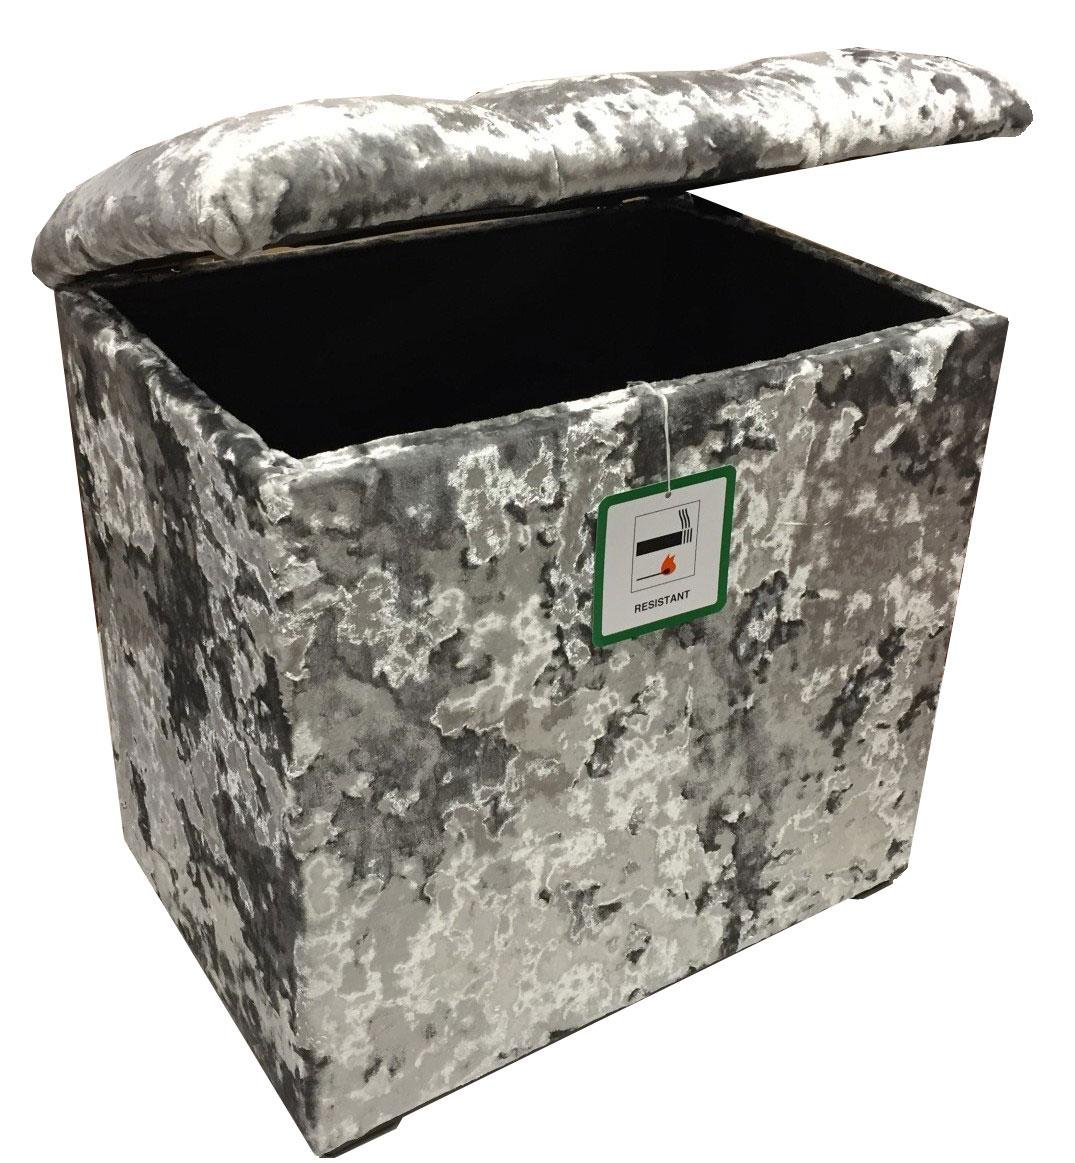 Elegance Furnishings Small Linen Box/Dressing Table Stool a lift up Diamond Crystal lid in a Quality Silver Velvet fabric.Ideal any room in the house J and M Furnishings